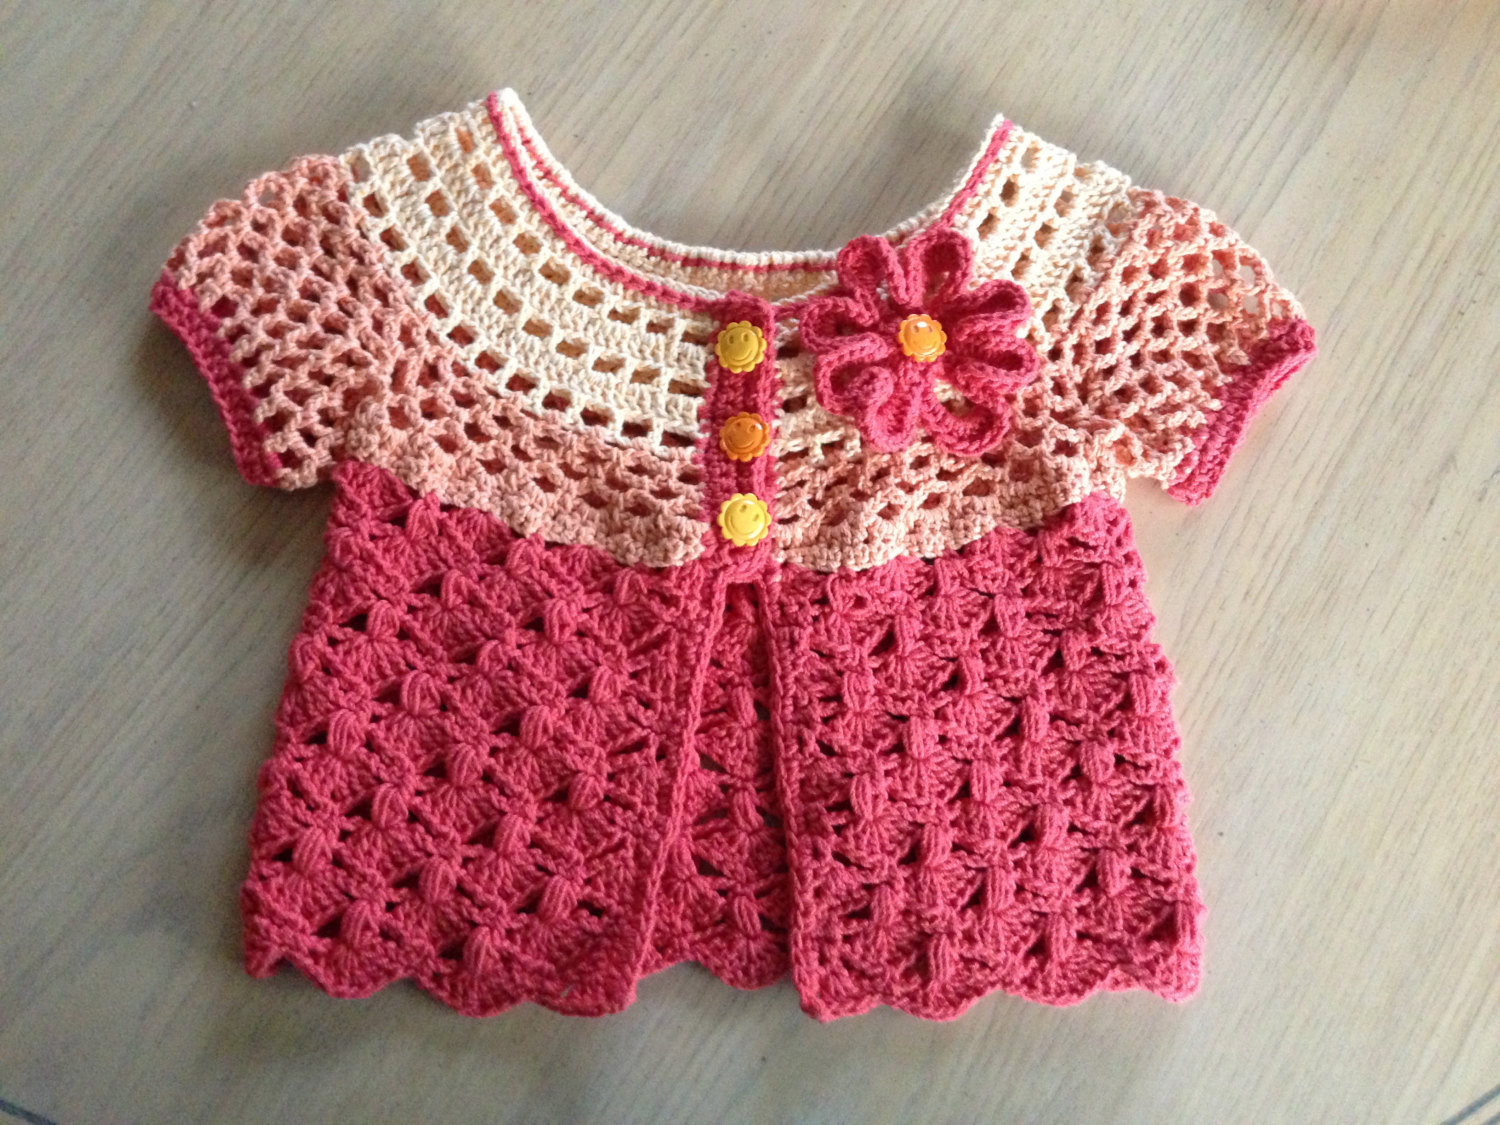 Free Baby Girl Crochet Patterns Elegant Crochet Baby Girl Sweater Pattern Of Fresh 40 Pics Free Baby Girl Crochet Patterns